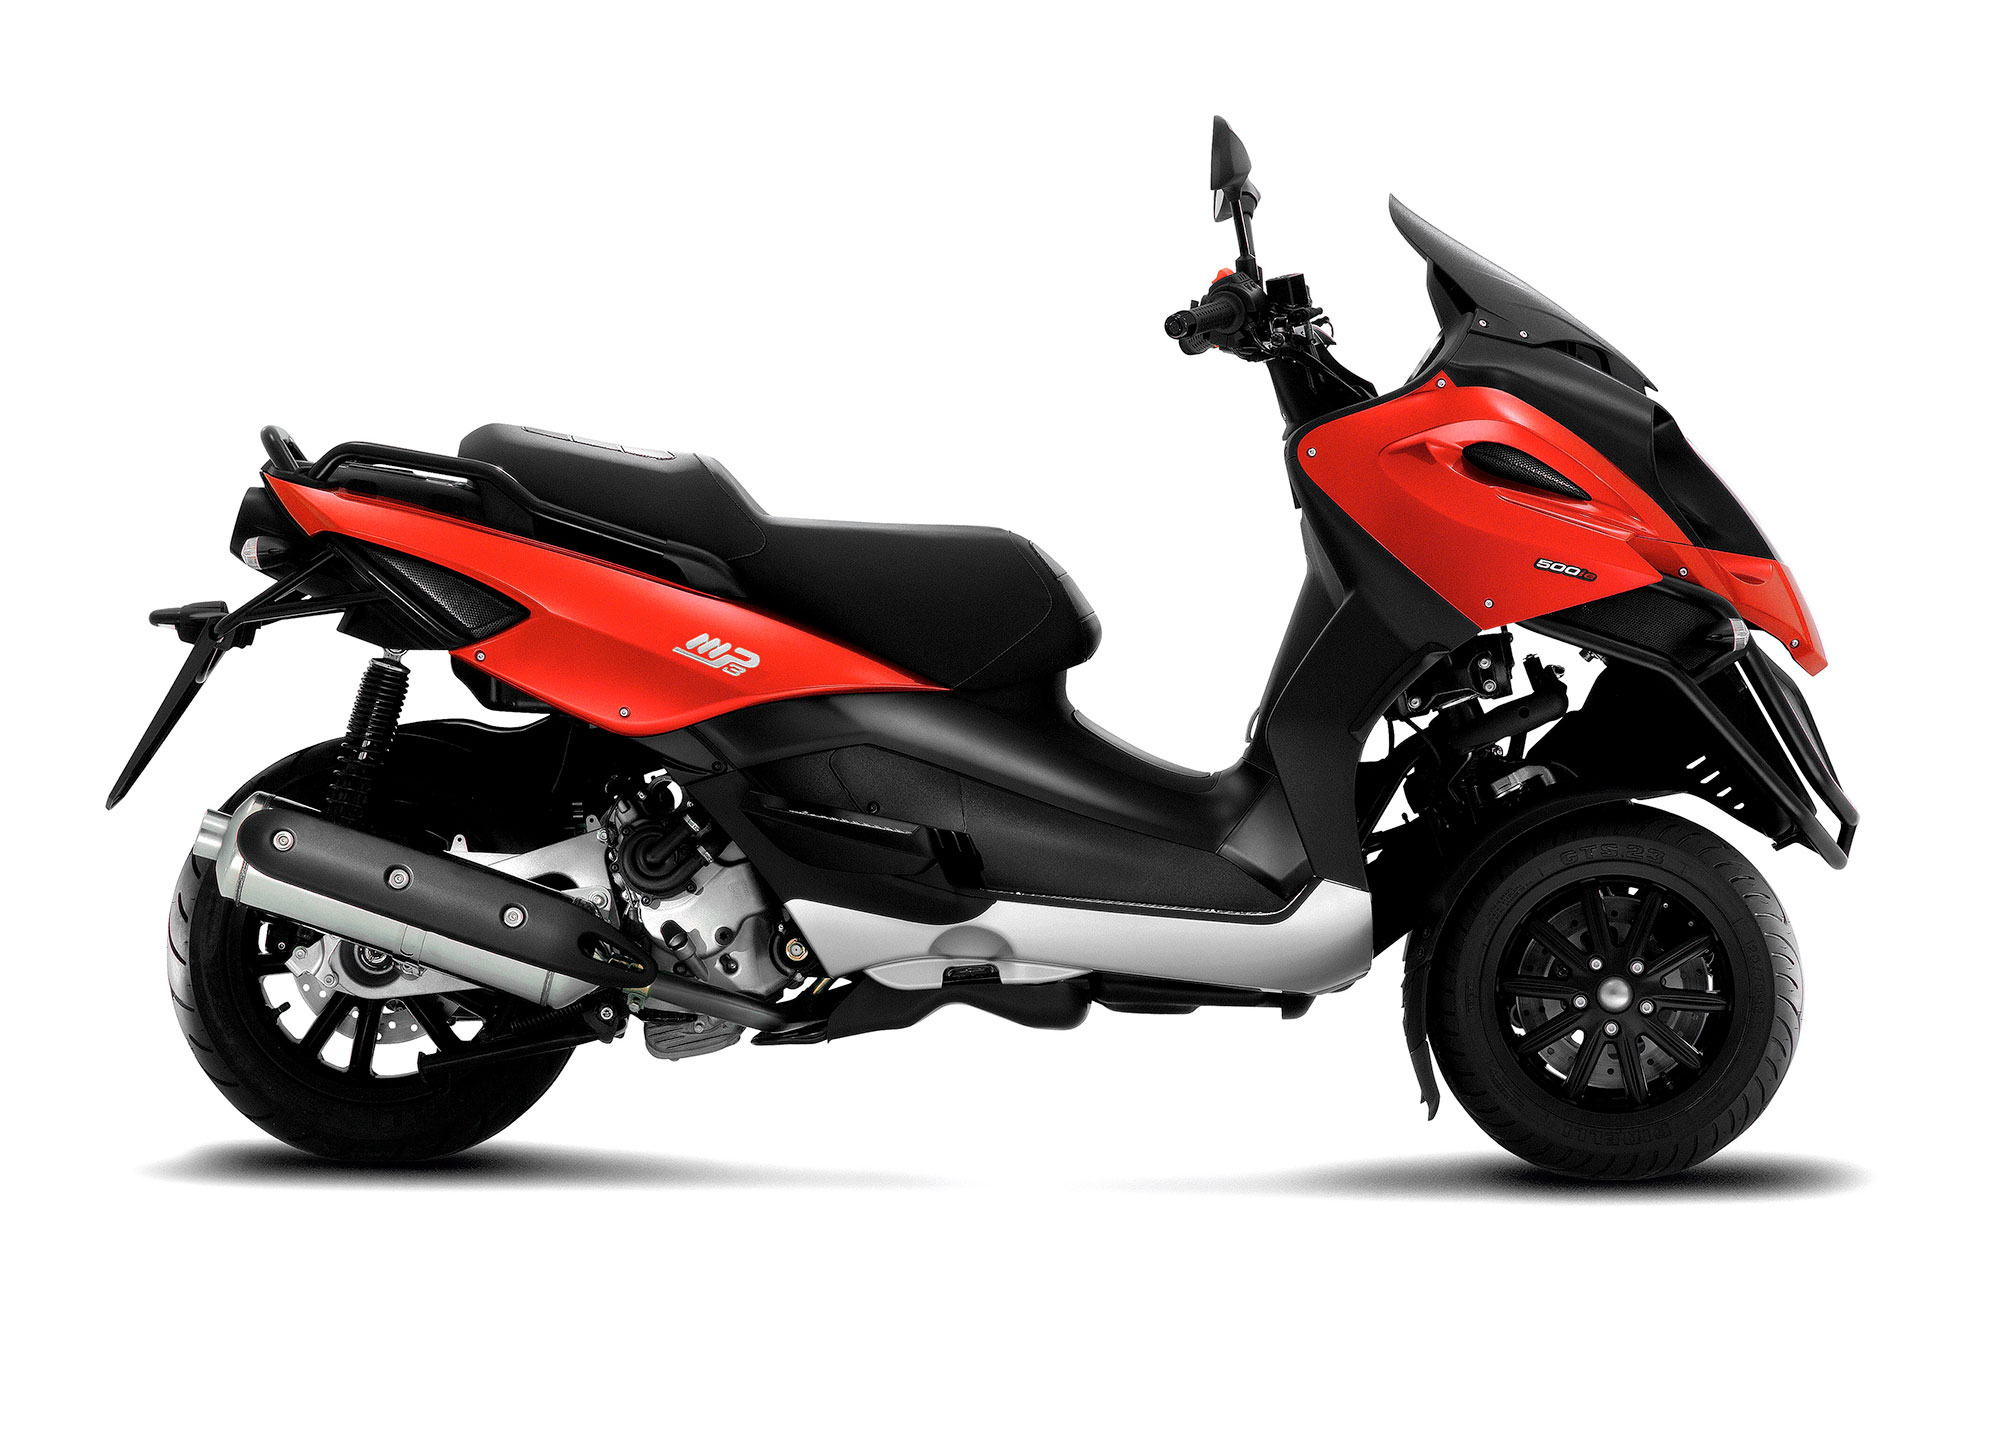 2013 piaggio mp3 500 scooter review. Black Bedroom Furniture Sets. Home Design Ideas